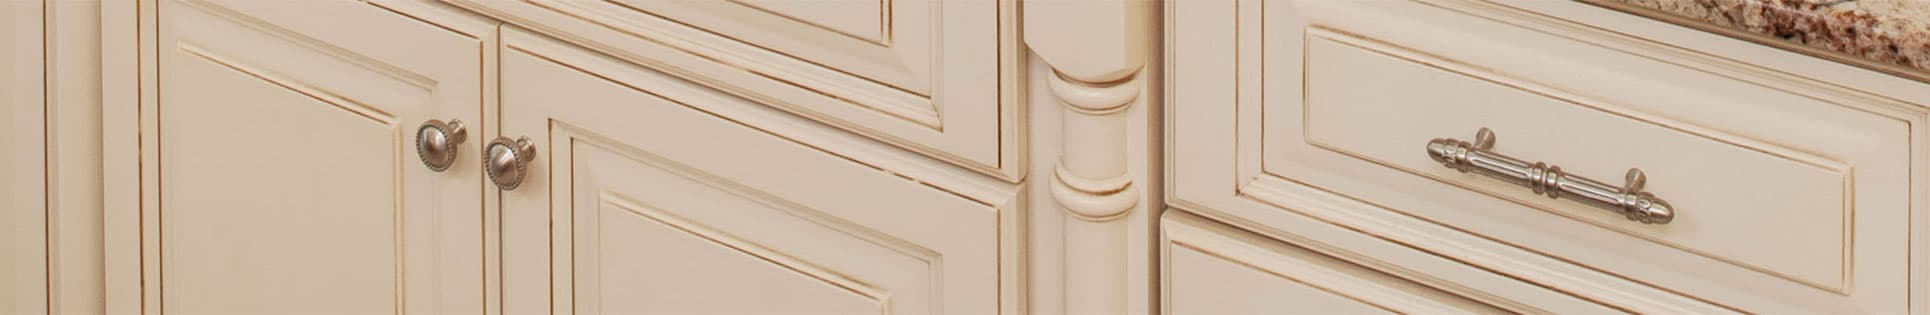 Finish Options & Custom Cabinet Door Finishes   Stained Painted Distressing